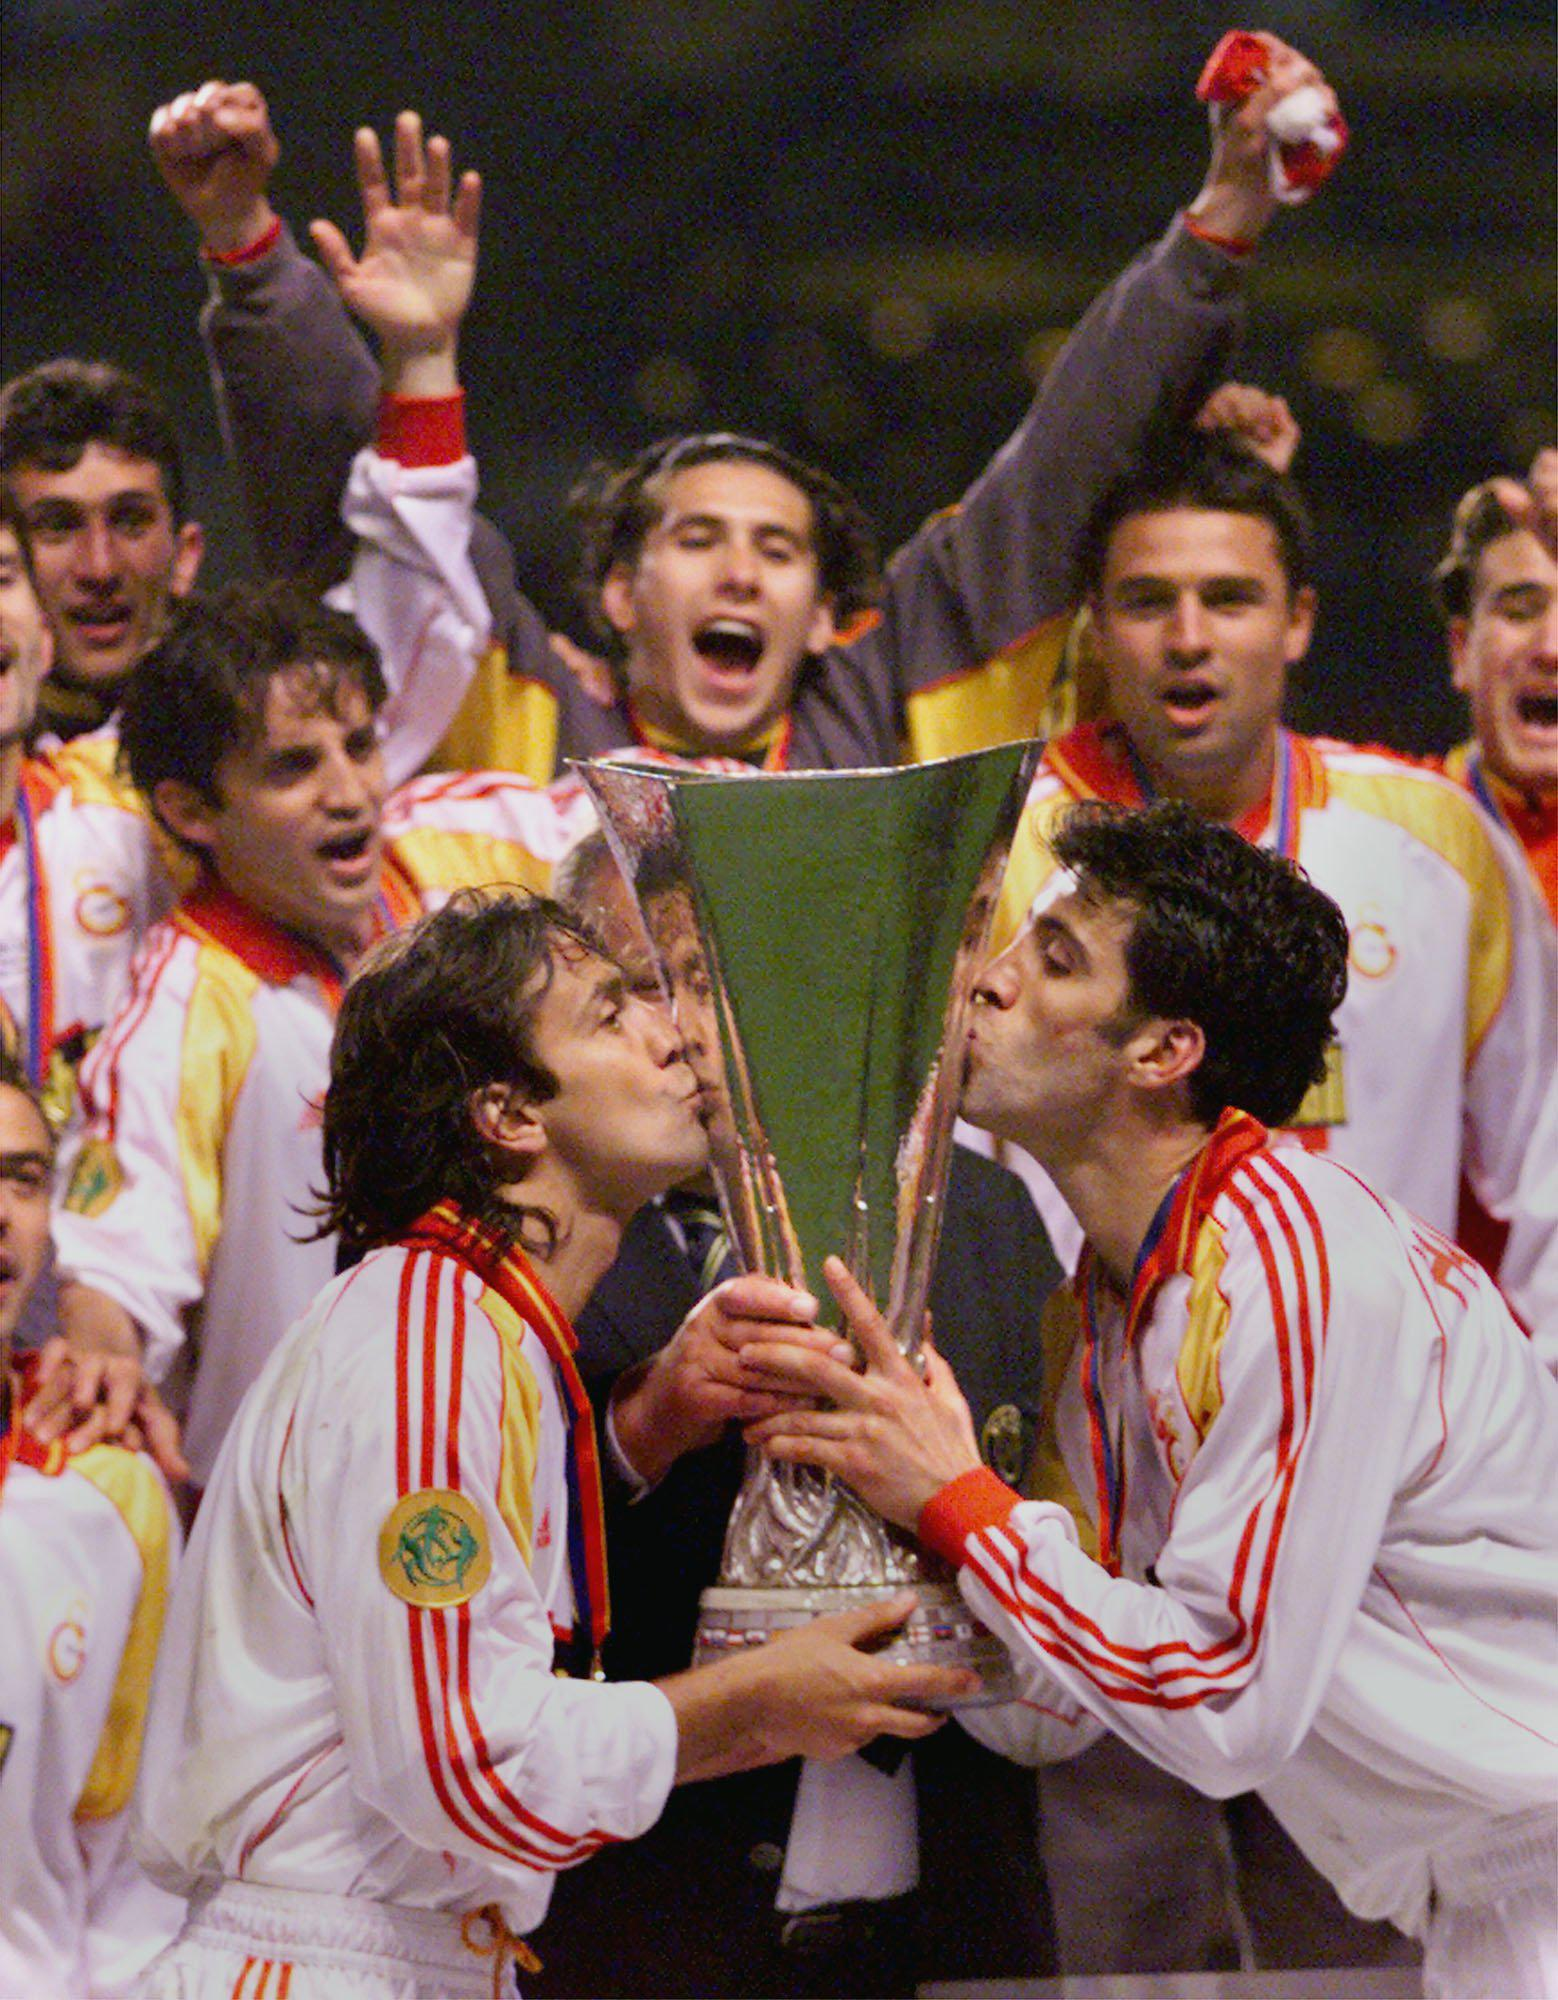 The ten men of Galatasaray came out on top in the shootout